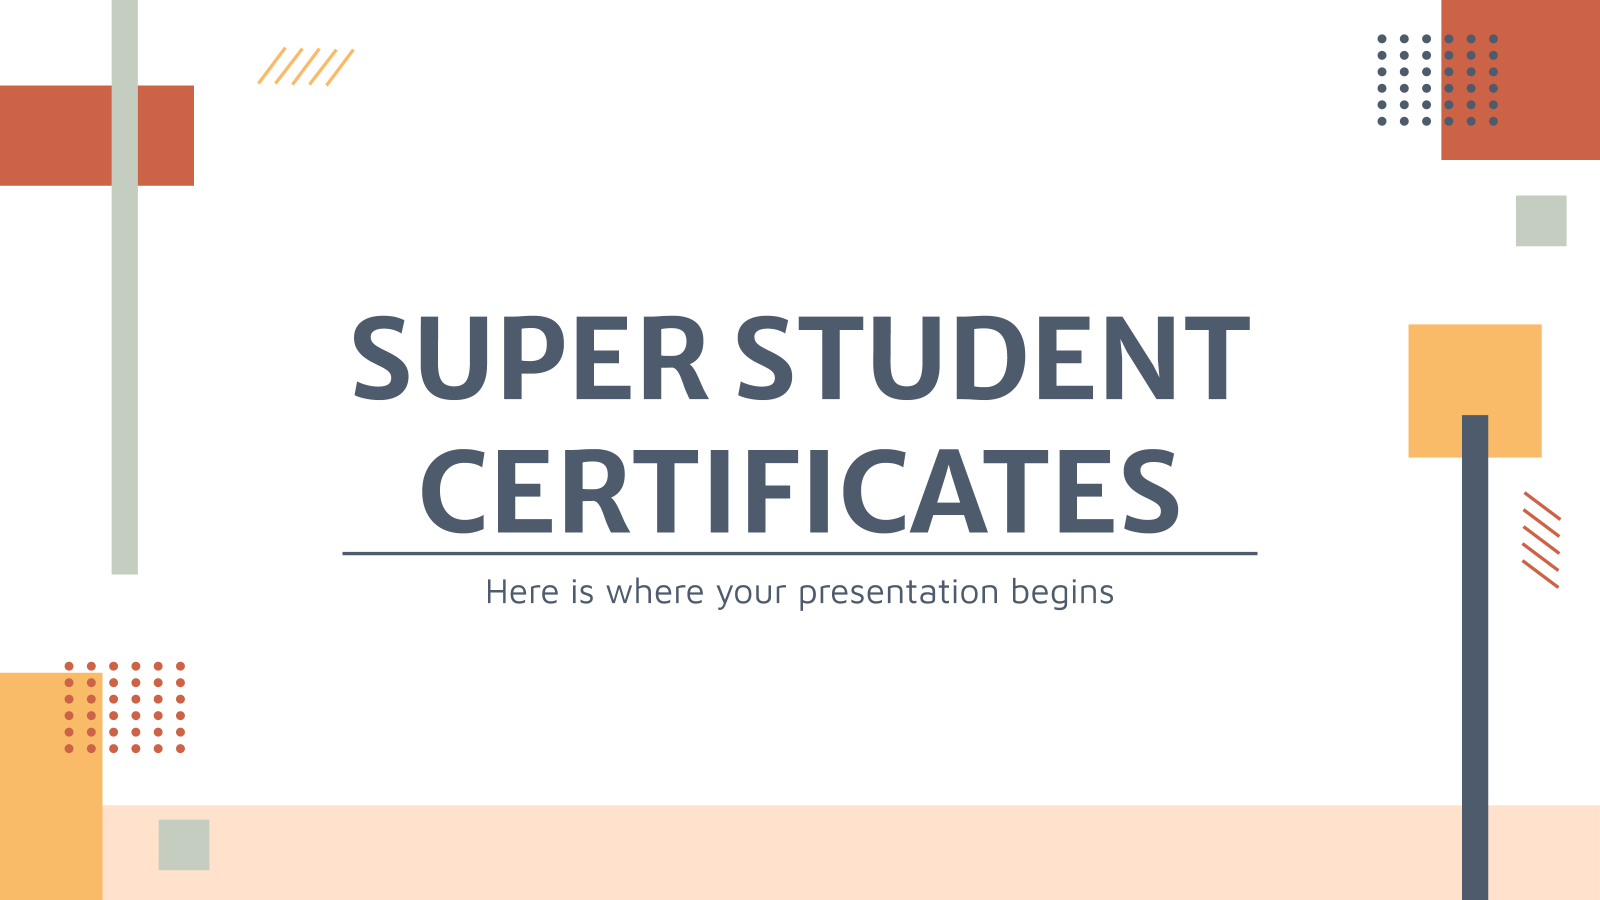 Super Student Certificates presentation template